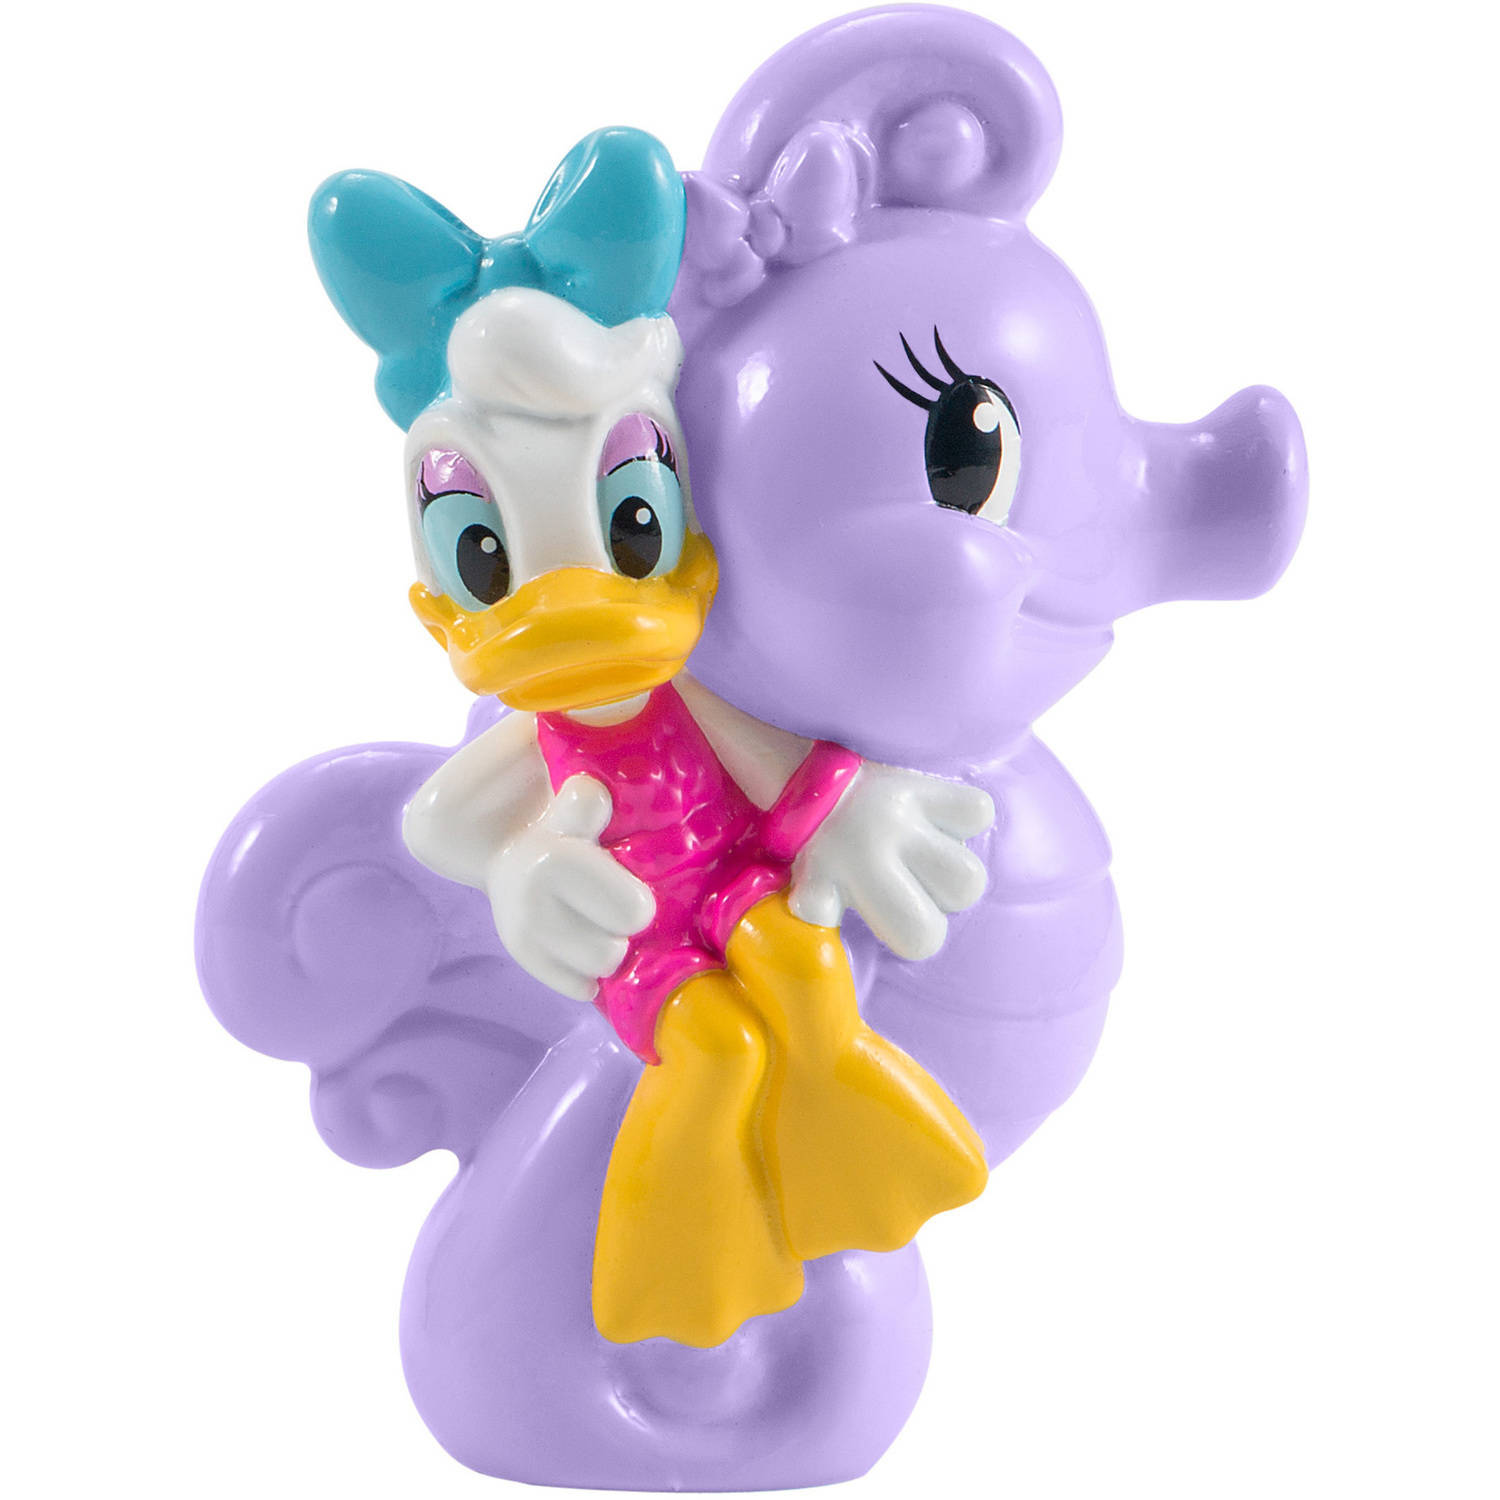 Disney Minnie Mouse Bath Squirter, Daisy by Disney Minnie Mouse